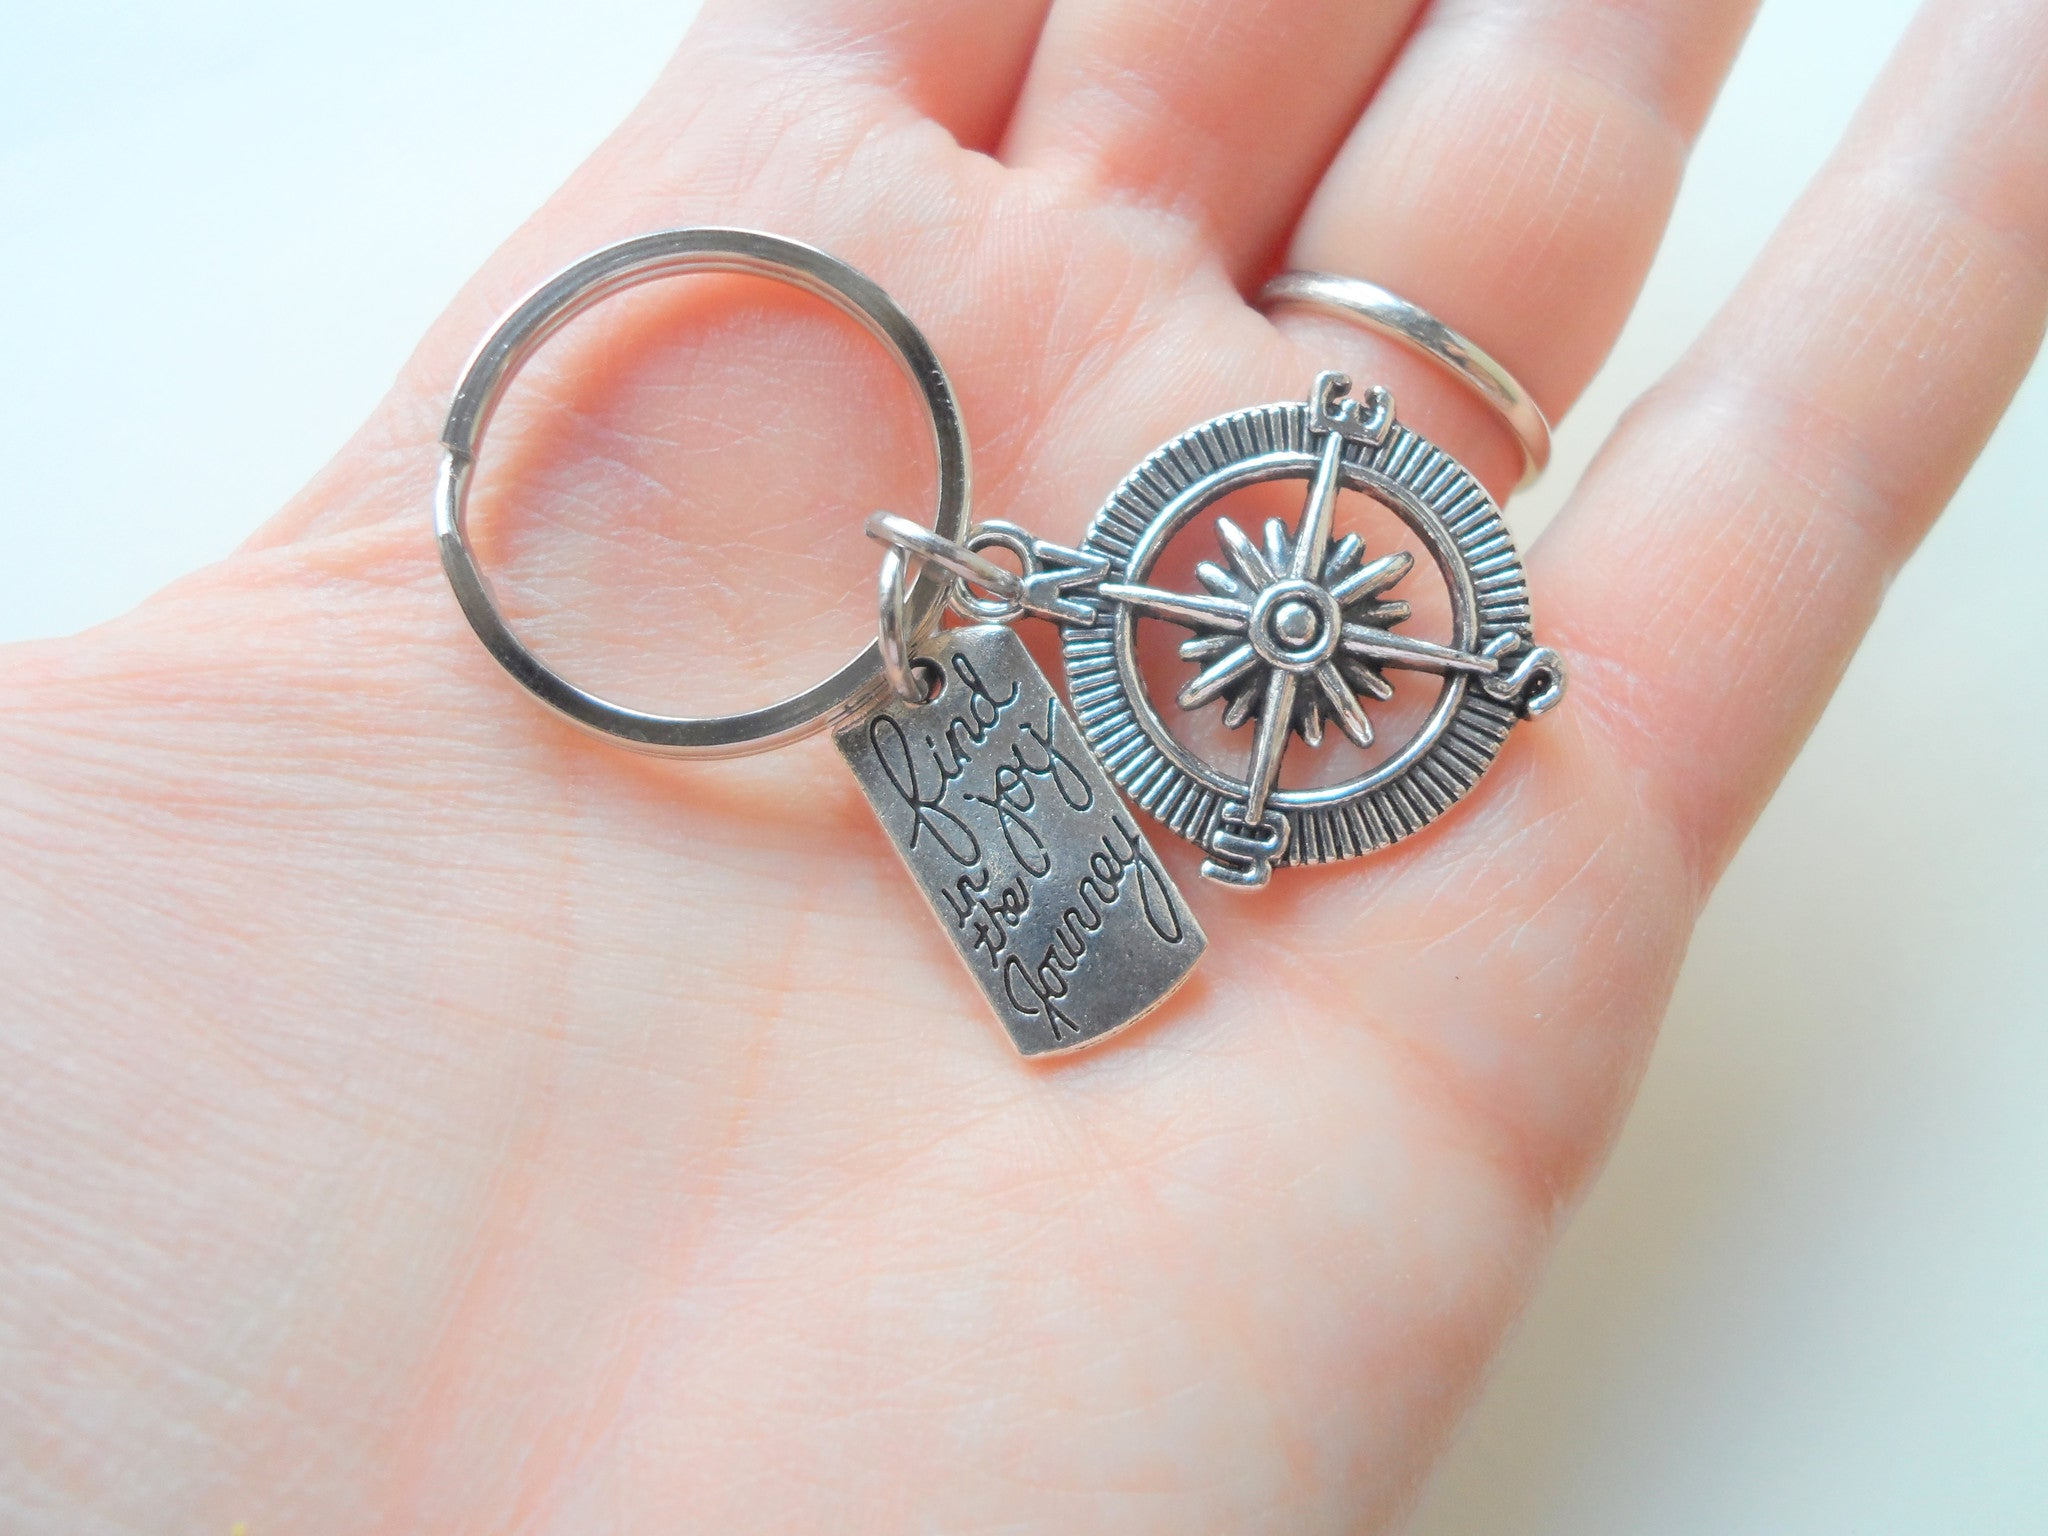 Enjoy The Journey Compass Dream Keychain 2E Its All About...You